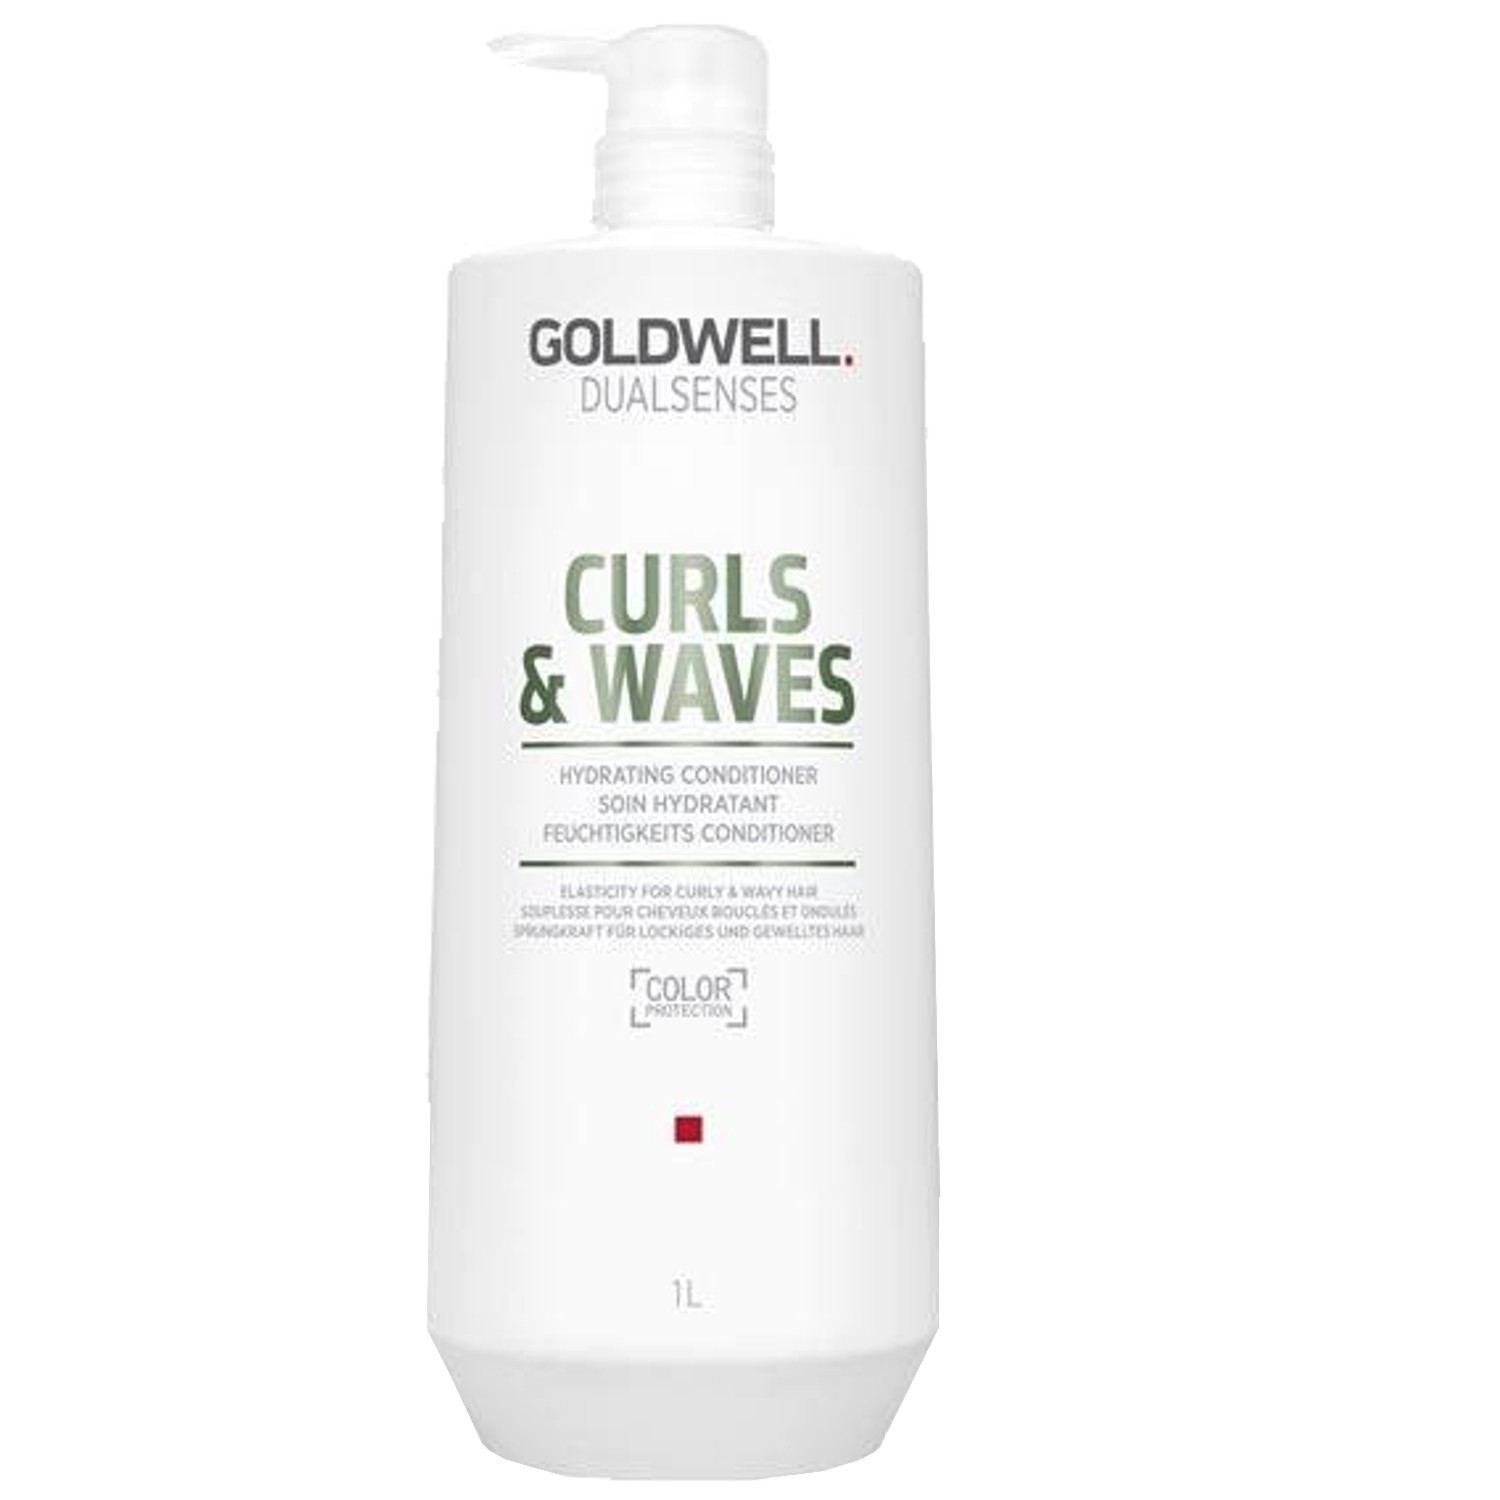 GOLDWELL Dualsenses Curls & Waves Hydrating Conditioner 1 L